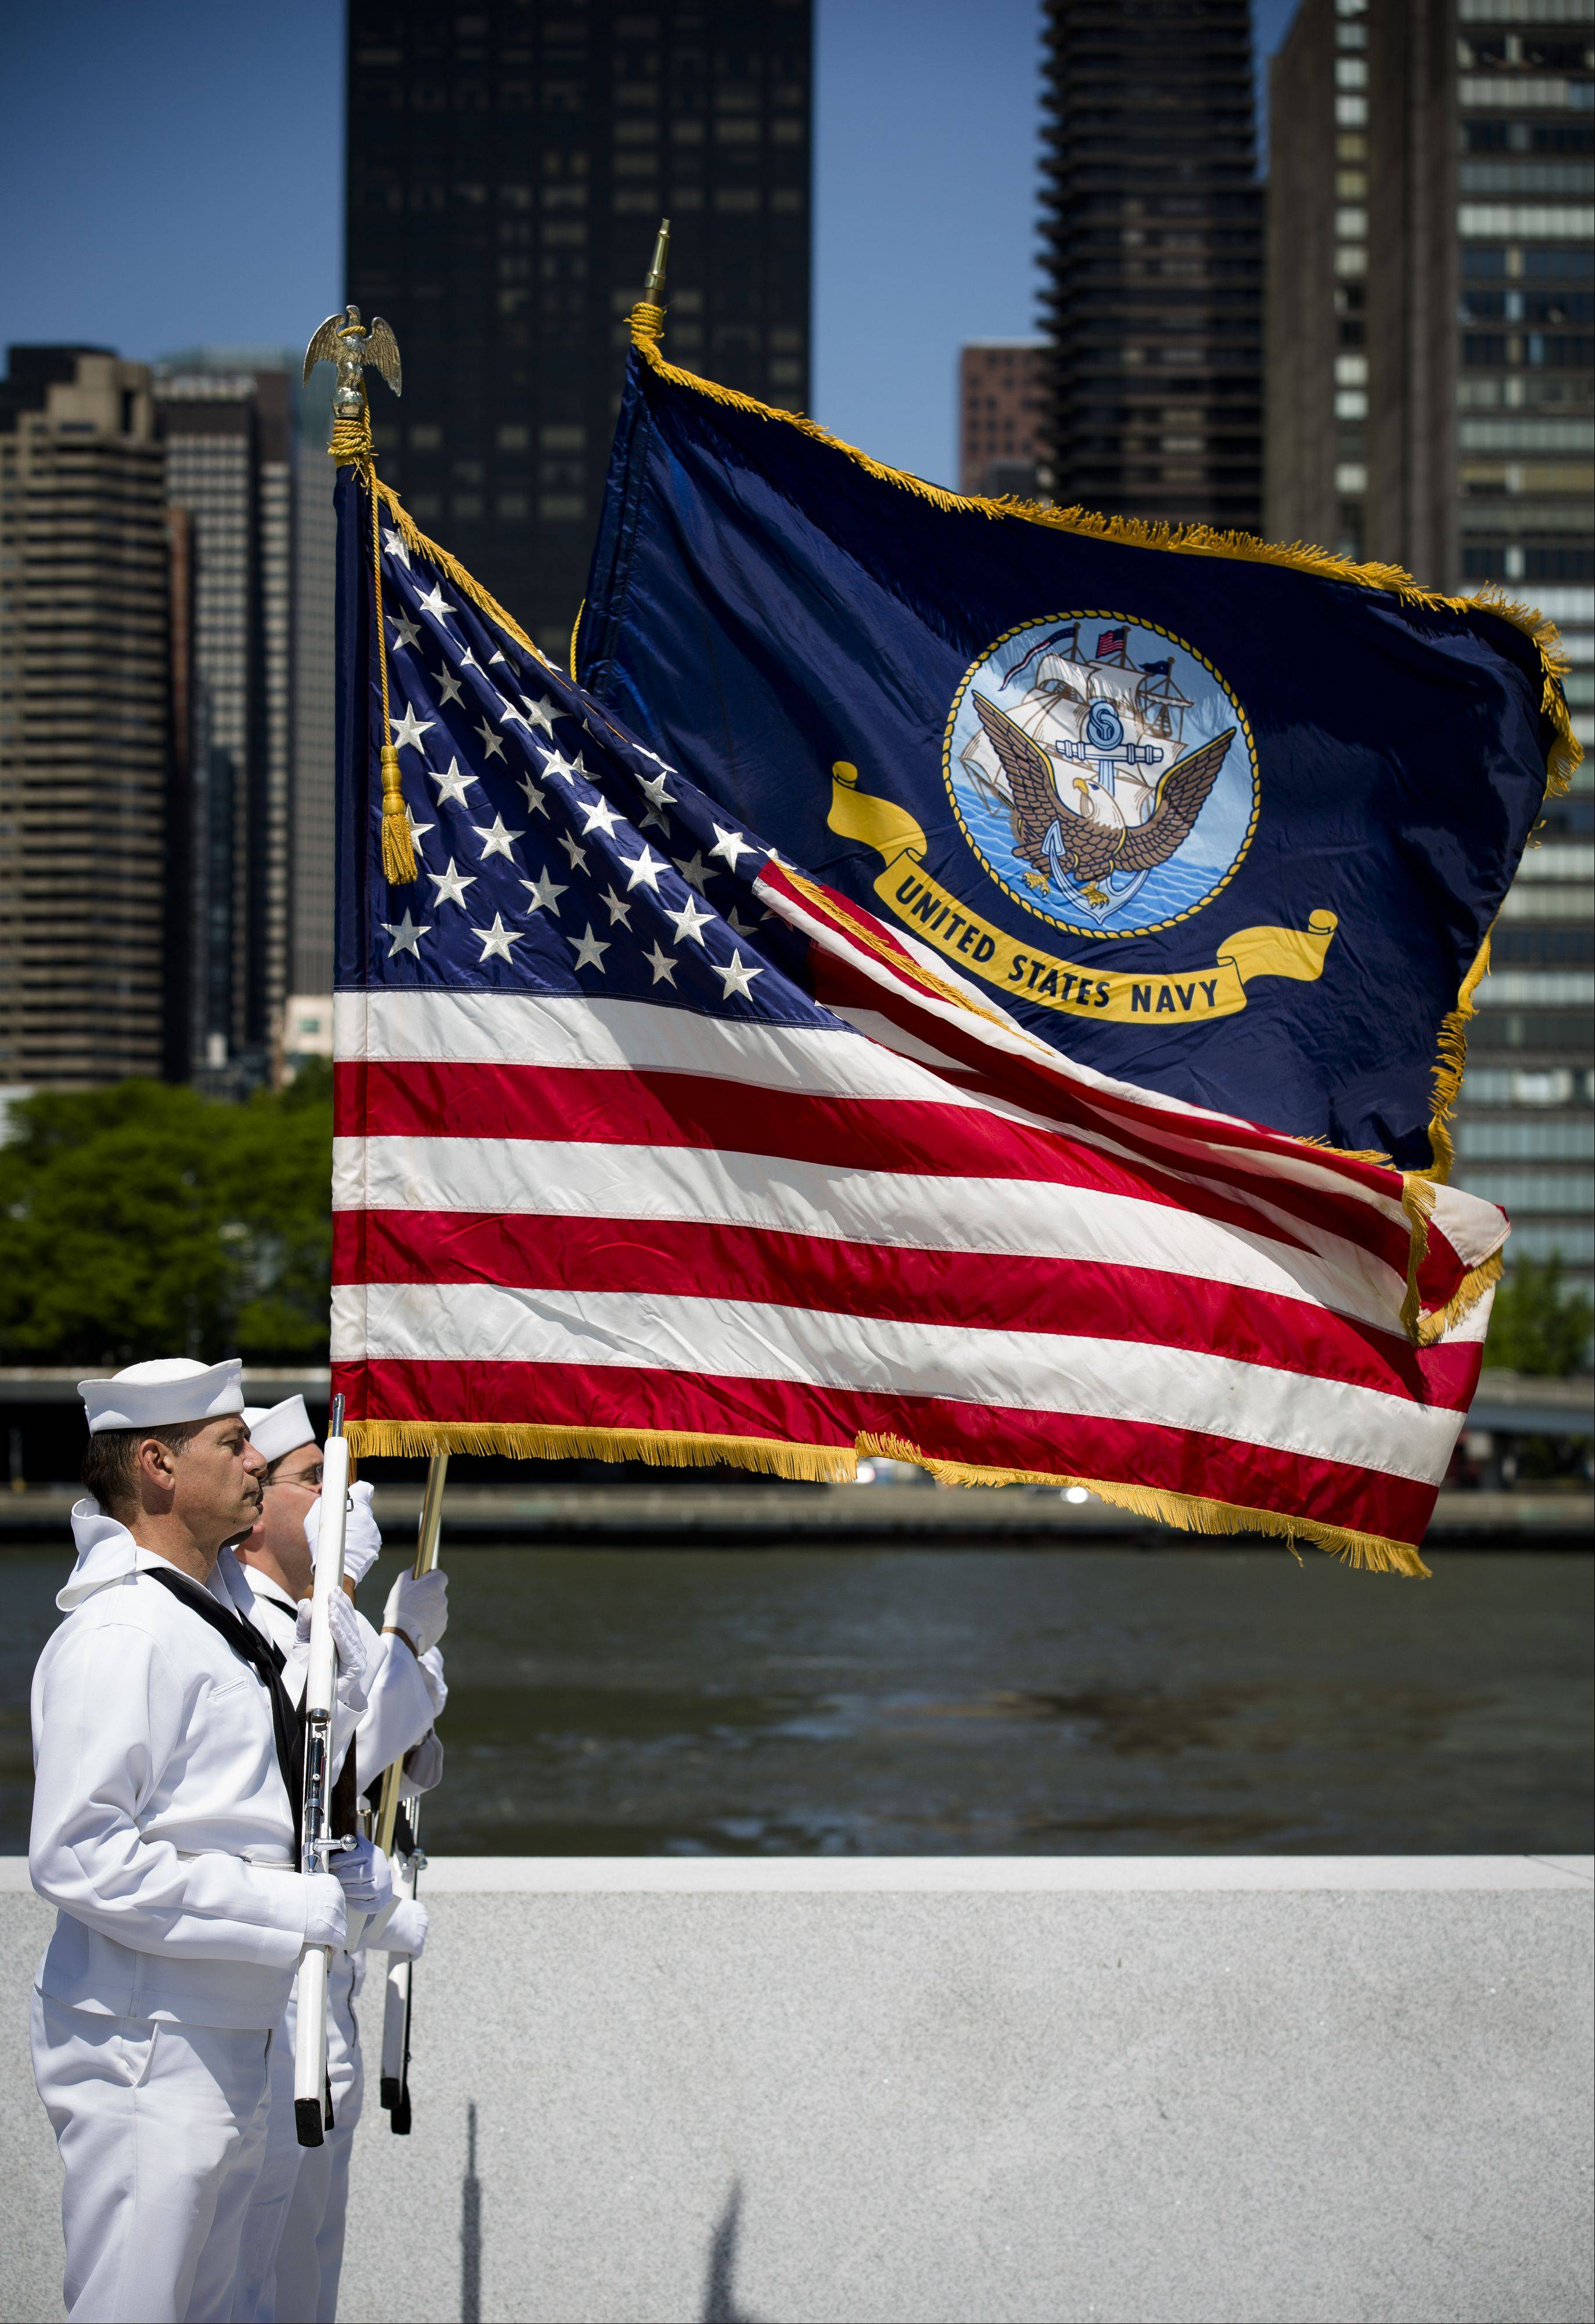 Seamen from the Navy Operational Support Center of New York City present flags during a Memorial Day wreath laying at the Franklin D. Roosevelt Four Freedoms Park on Roosevelt Island, Monday, May 27, 2013, in New York.